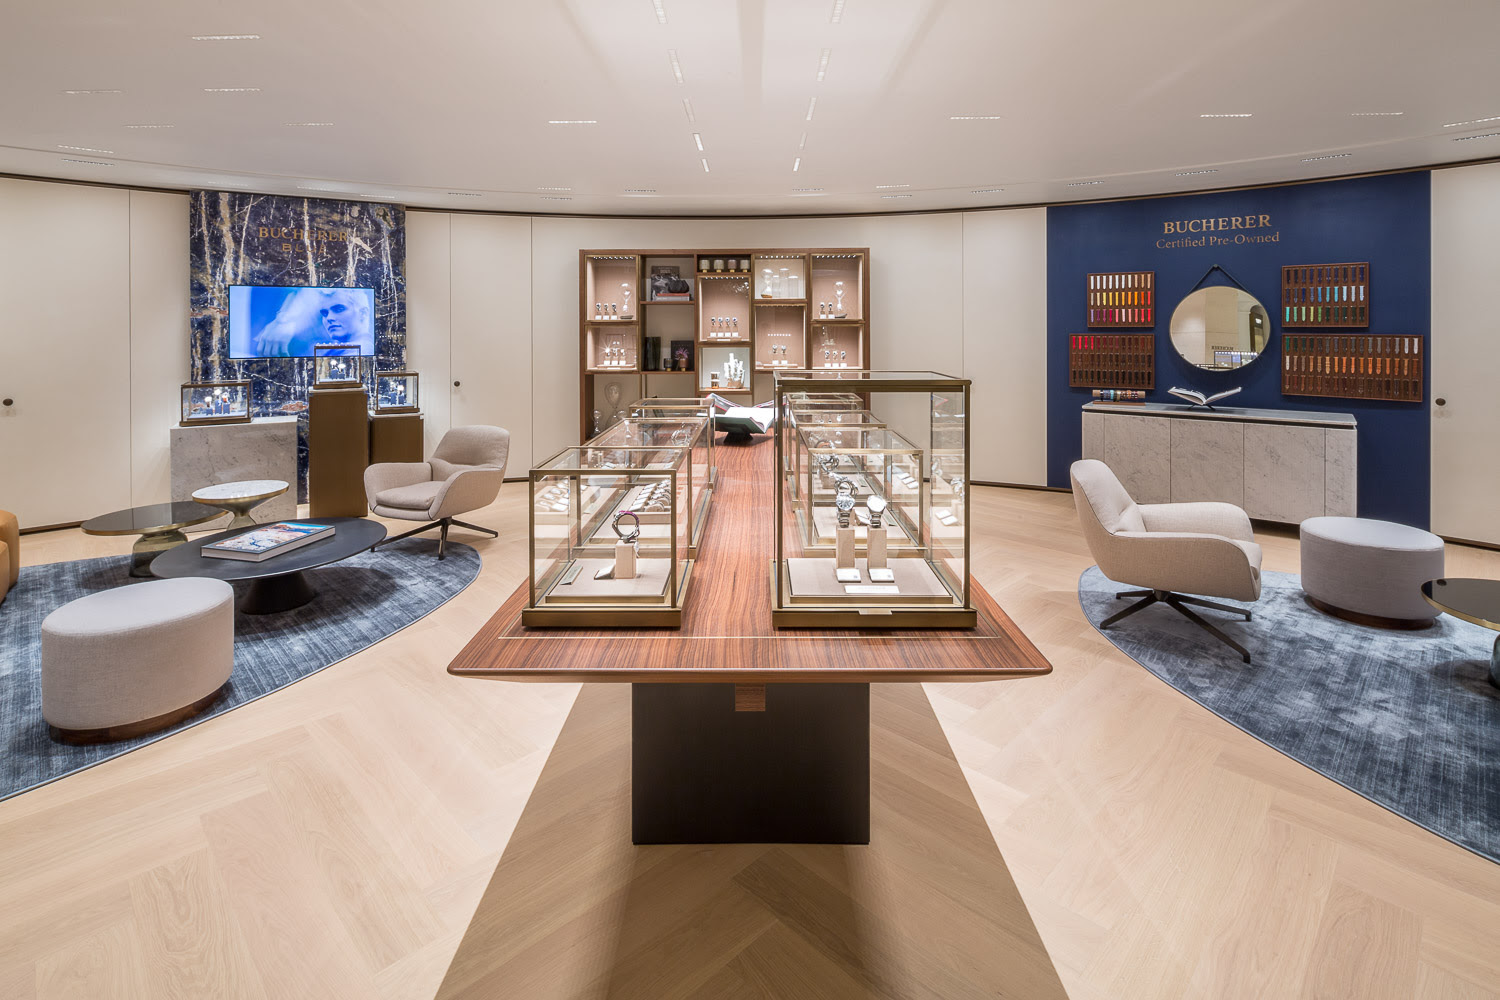 Bucherer-Opens-CPO-Certified-Pre-Owned-Gallery-in-Paris-Flagship-Store-2.jpg